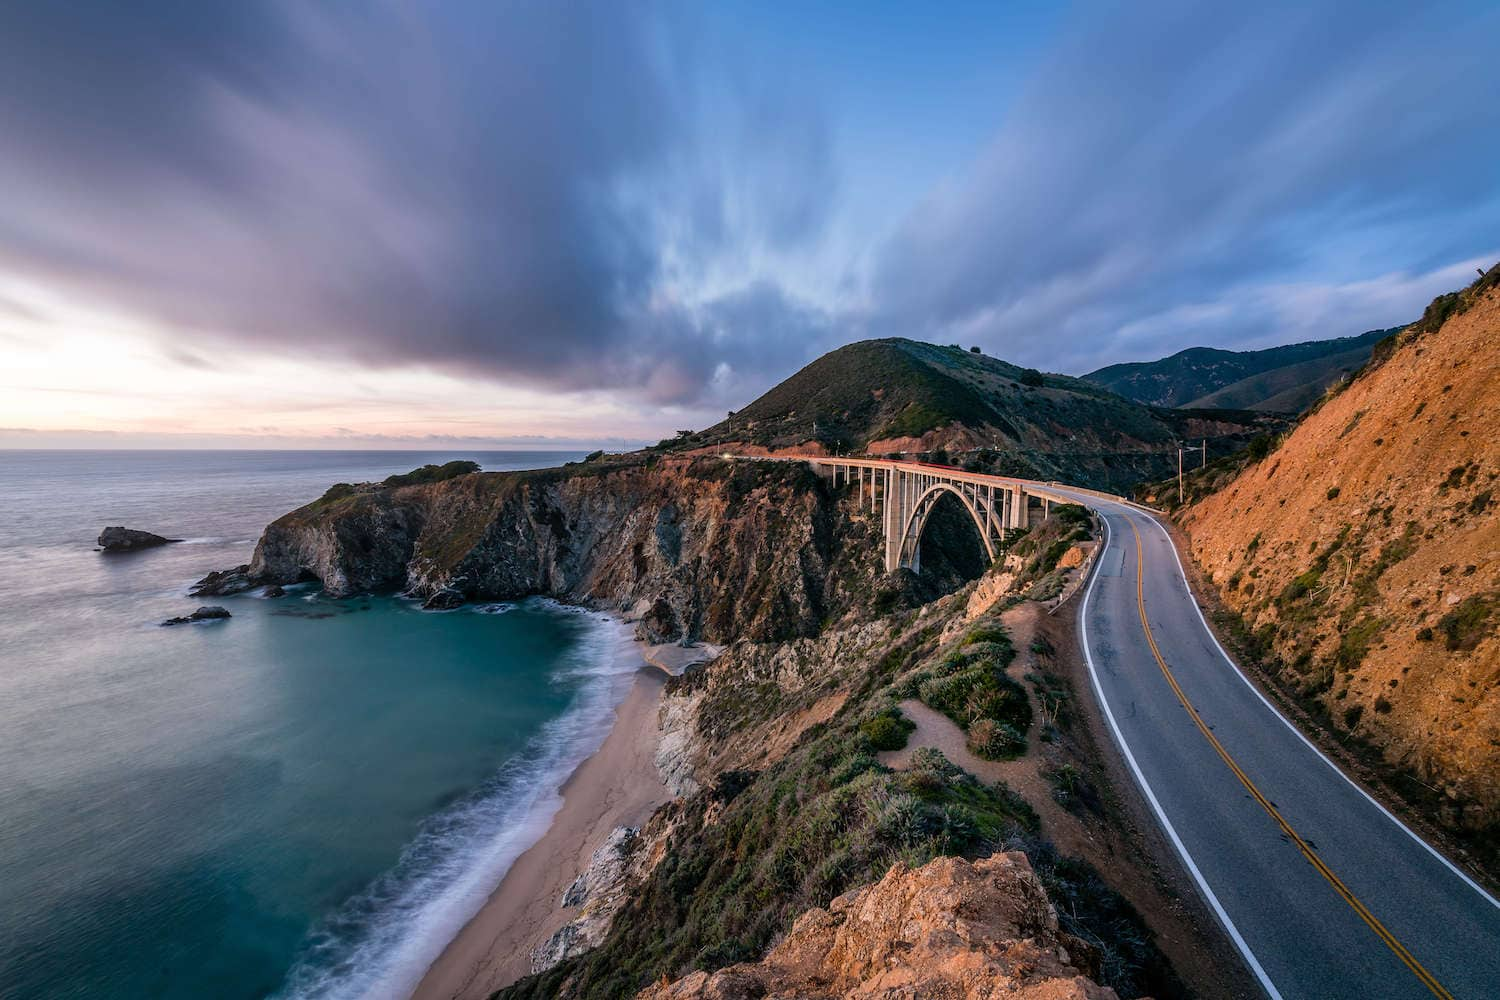 See the best California road trips stops for outdoor adventure including California's National Parks, monuments, coastal towns, and more.